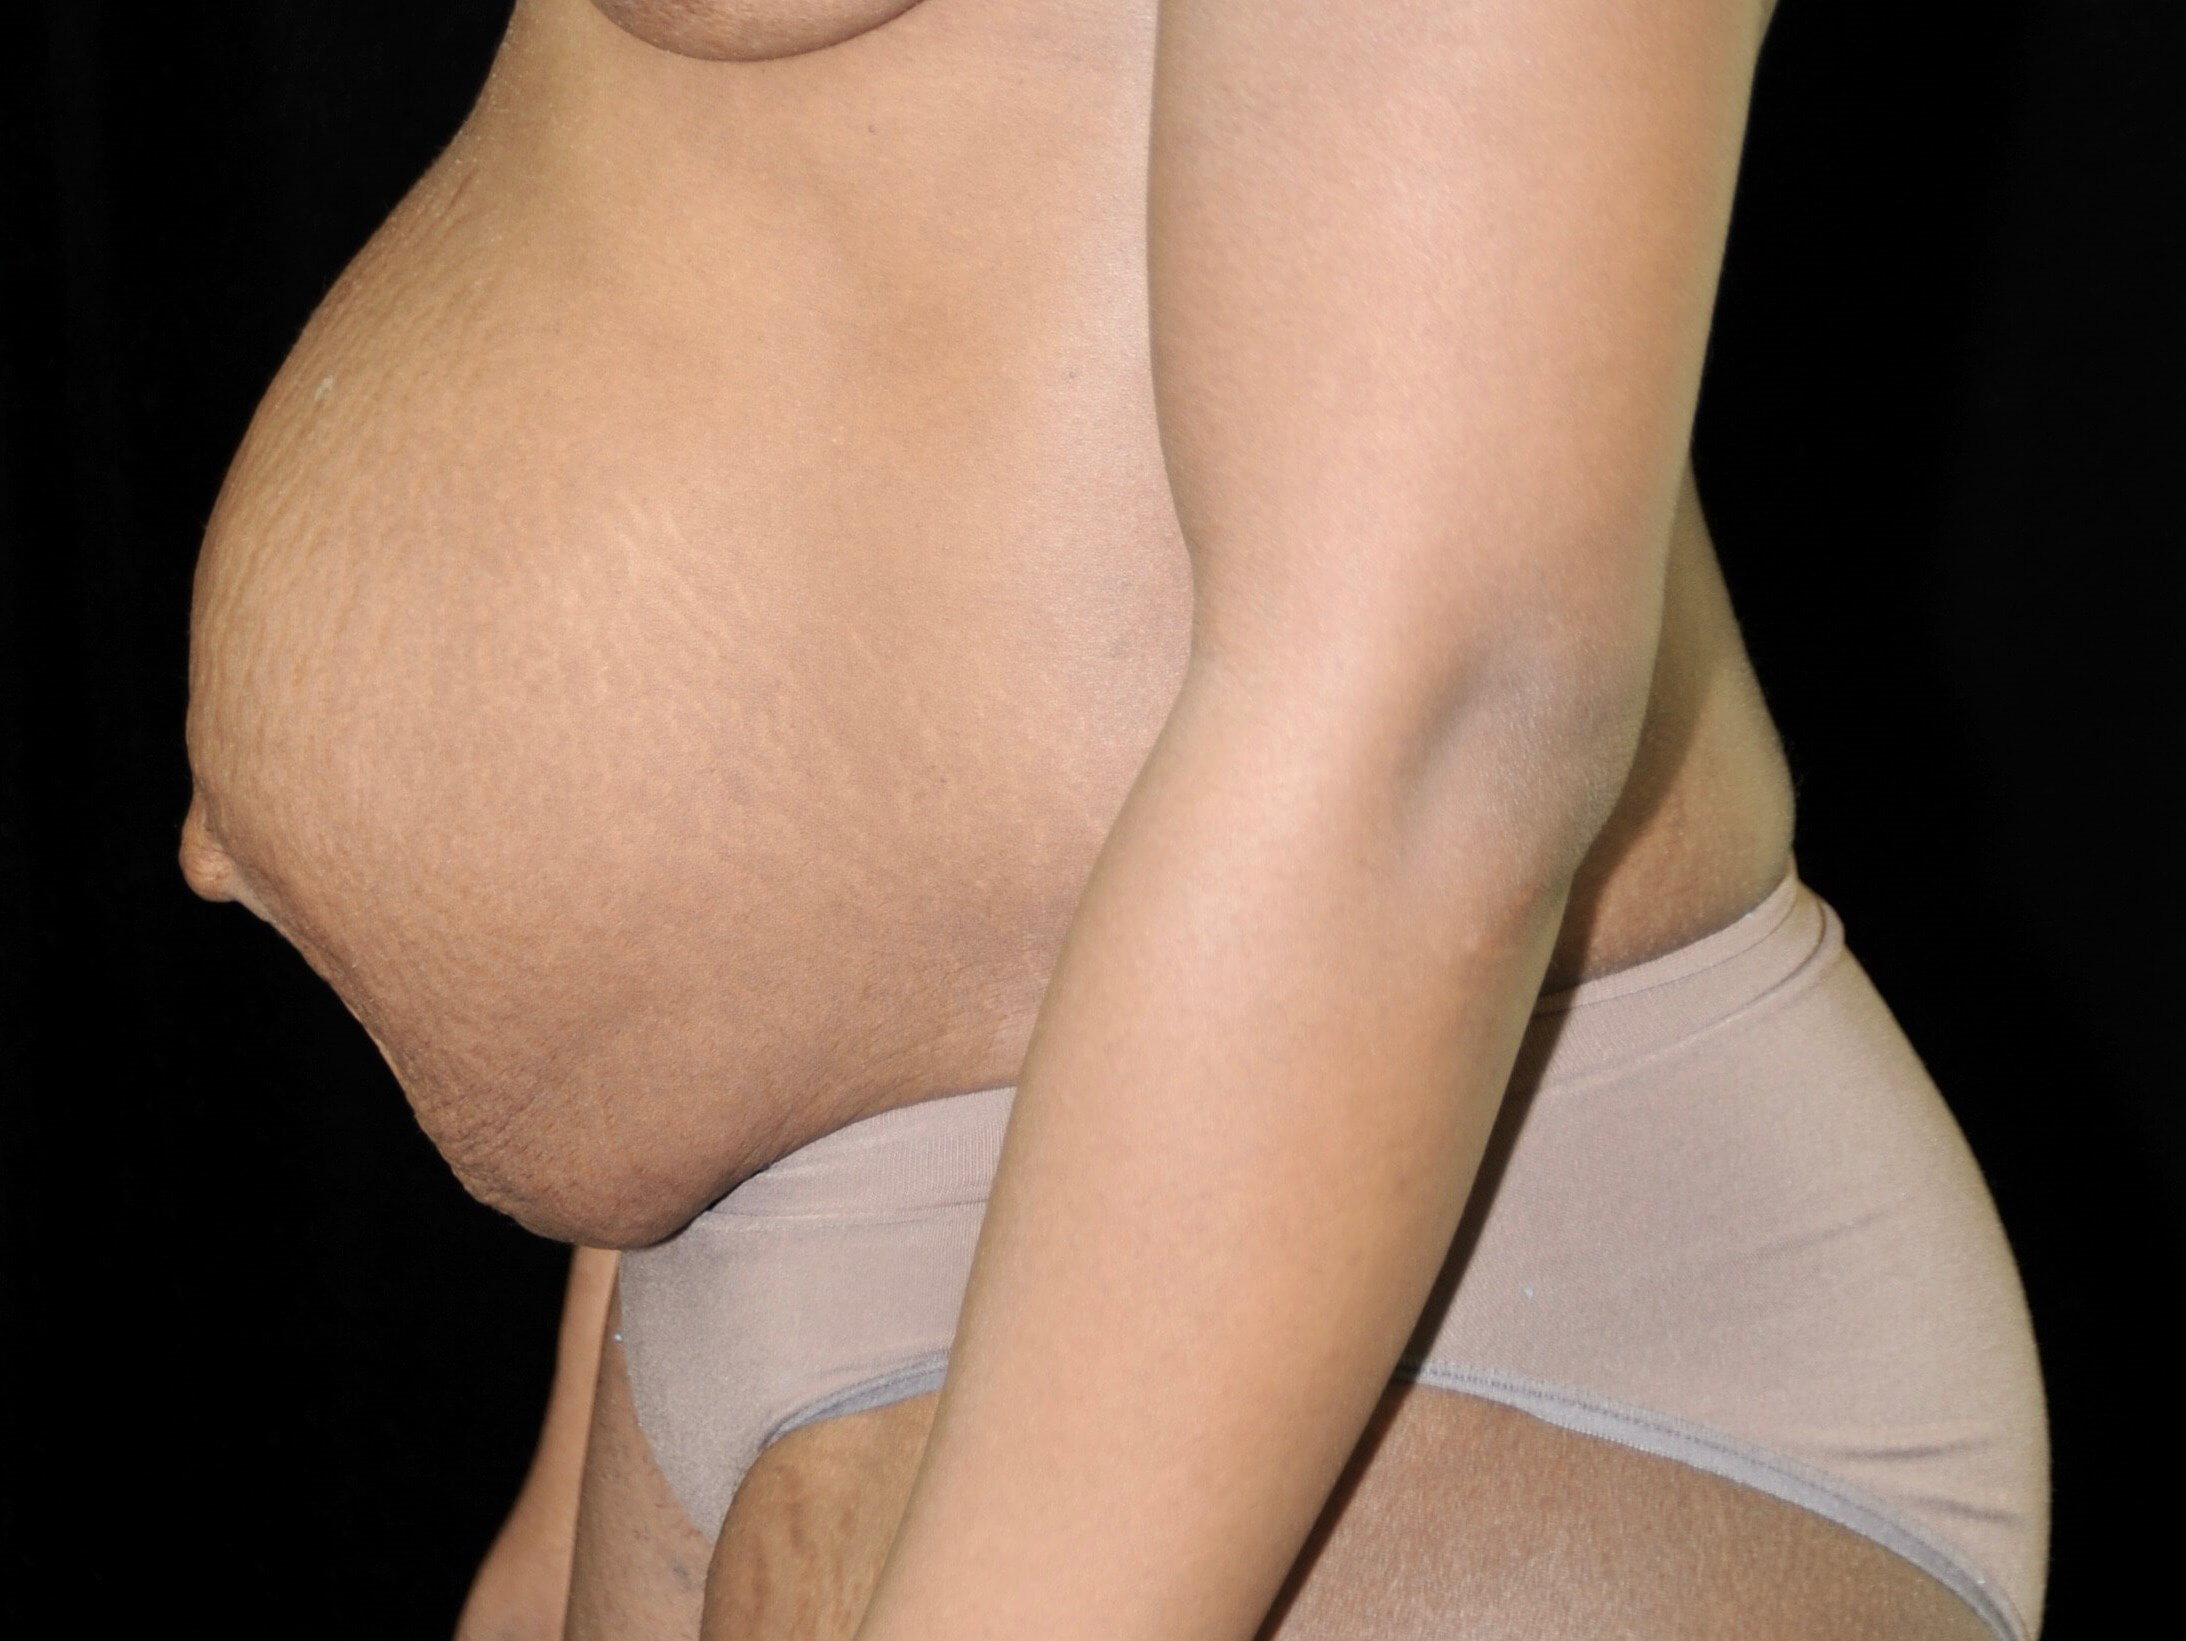 DALLAS MOM GETS MIDSECTION MAKEOVER WITH TUMMY TUCK SURGERY